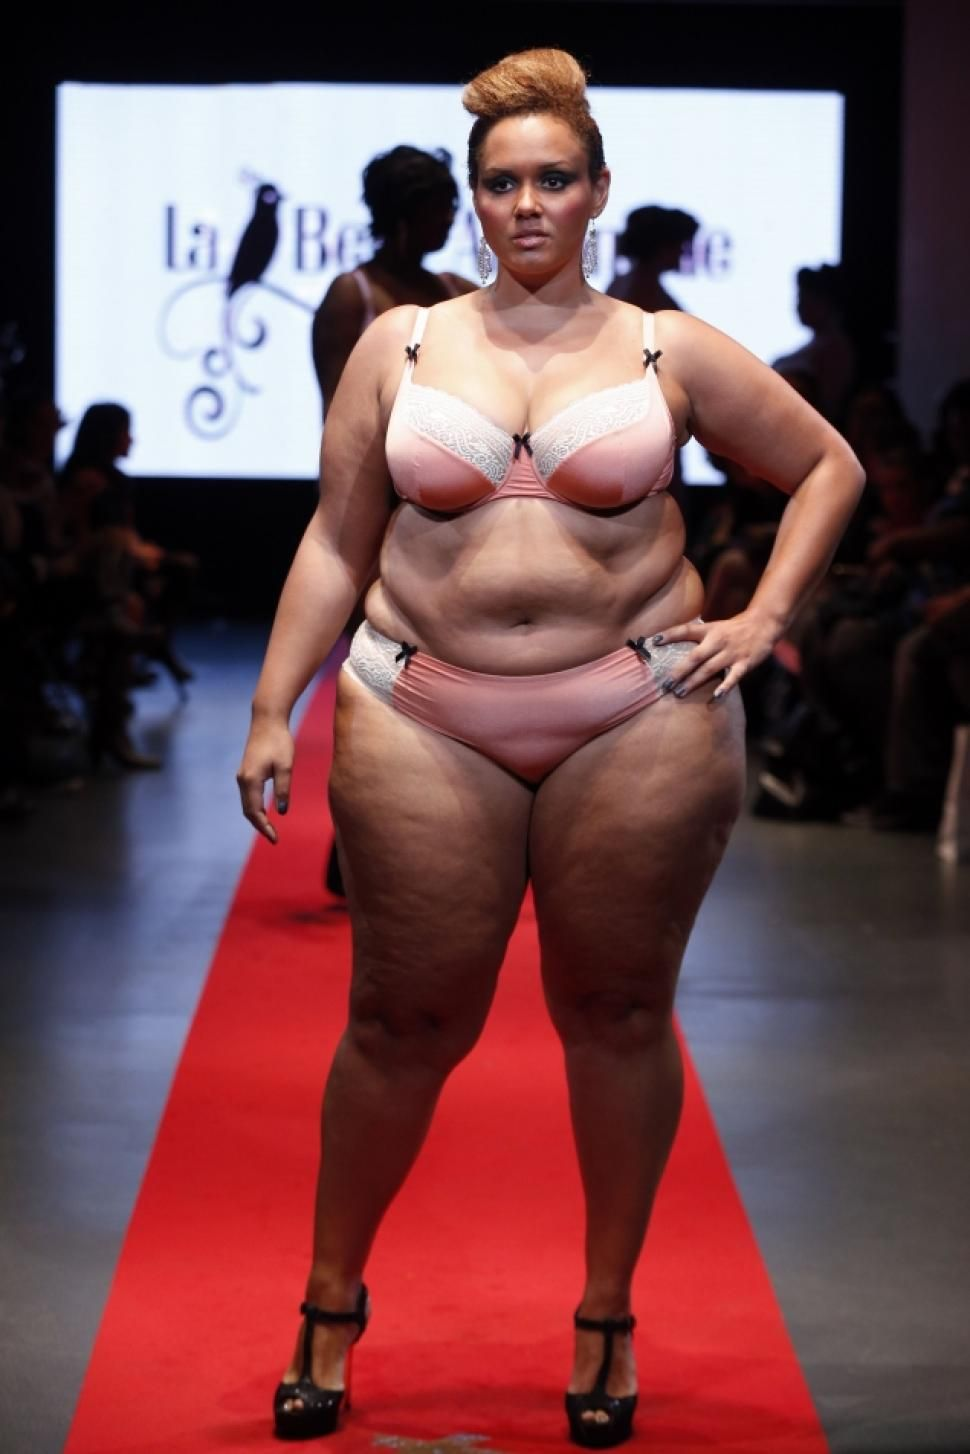 Plus-size models strut their stuff at Pulp Fashion Week in Paris ...